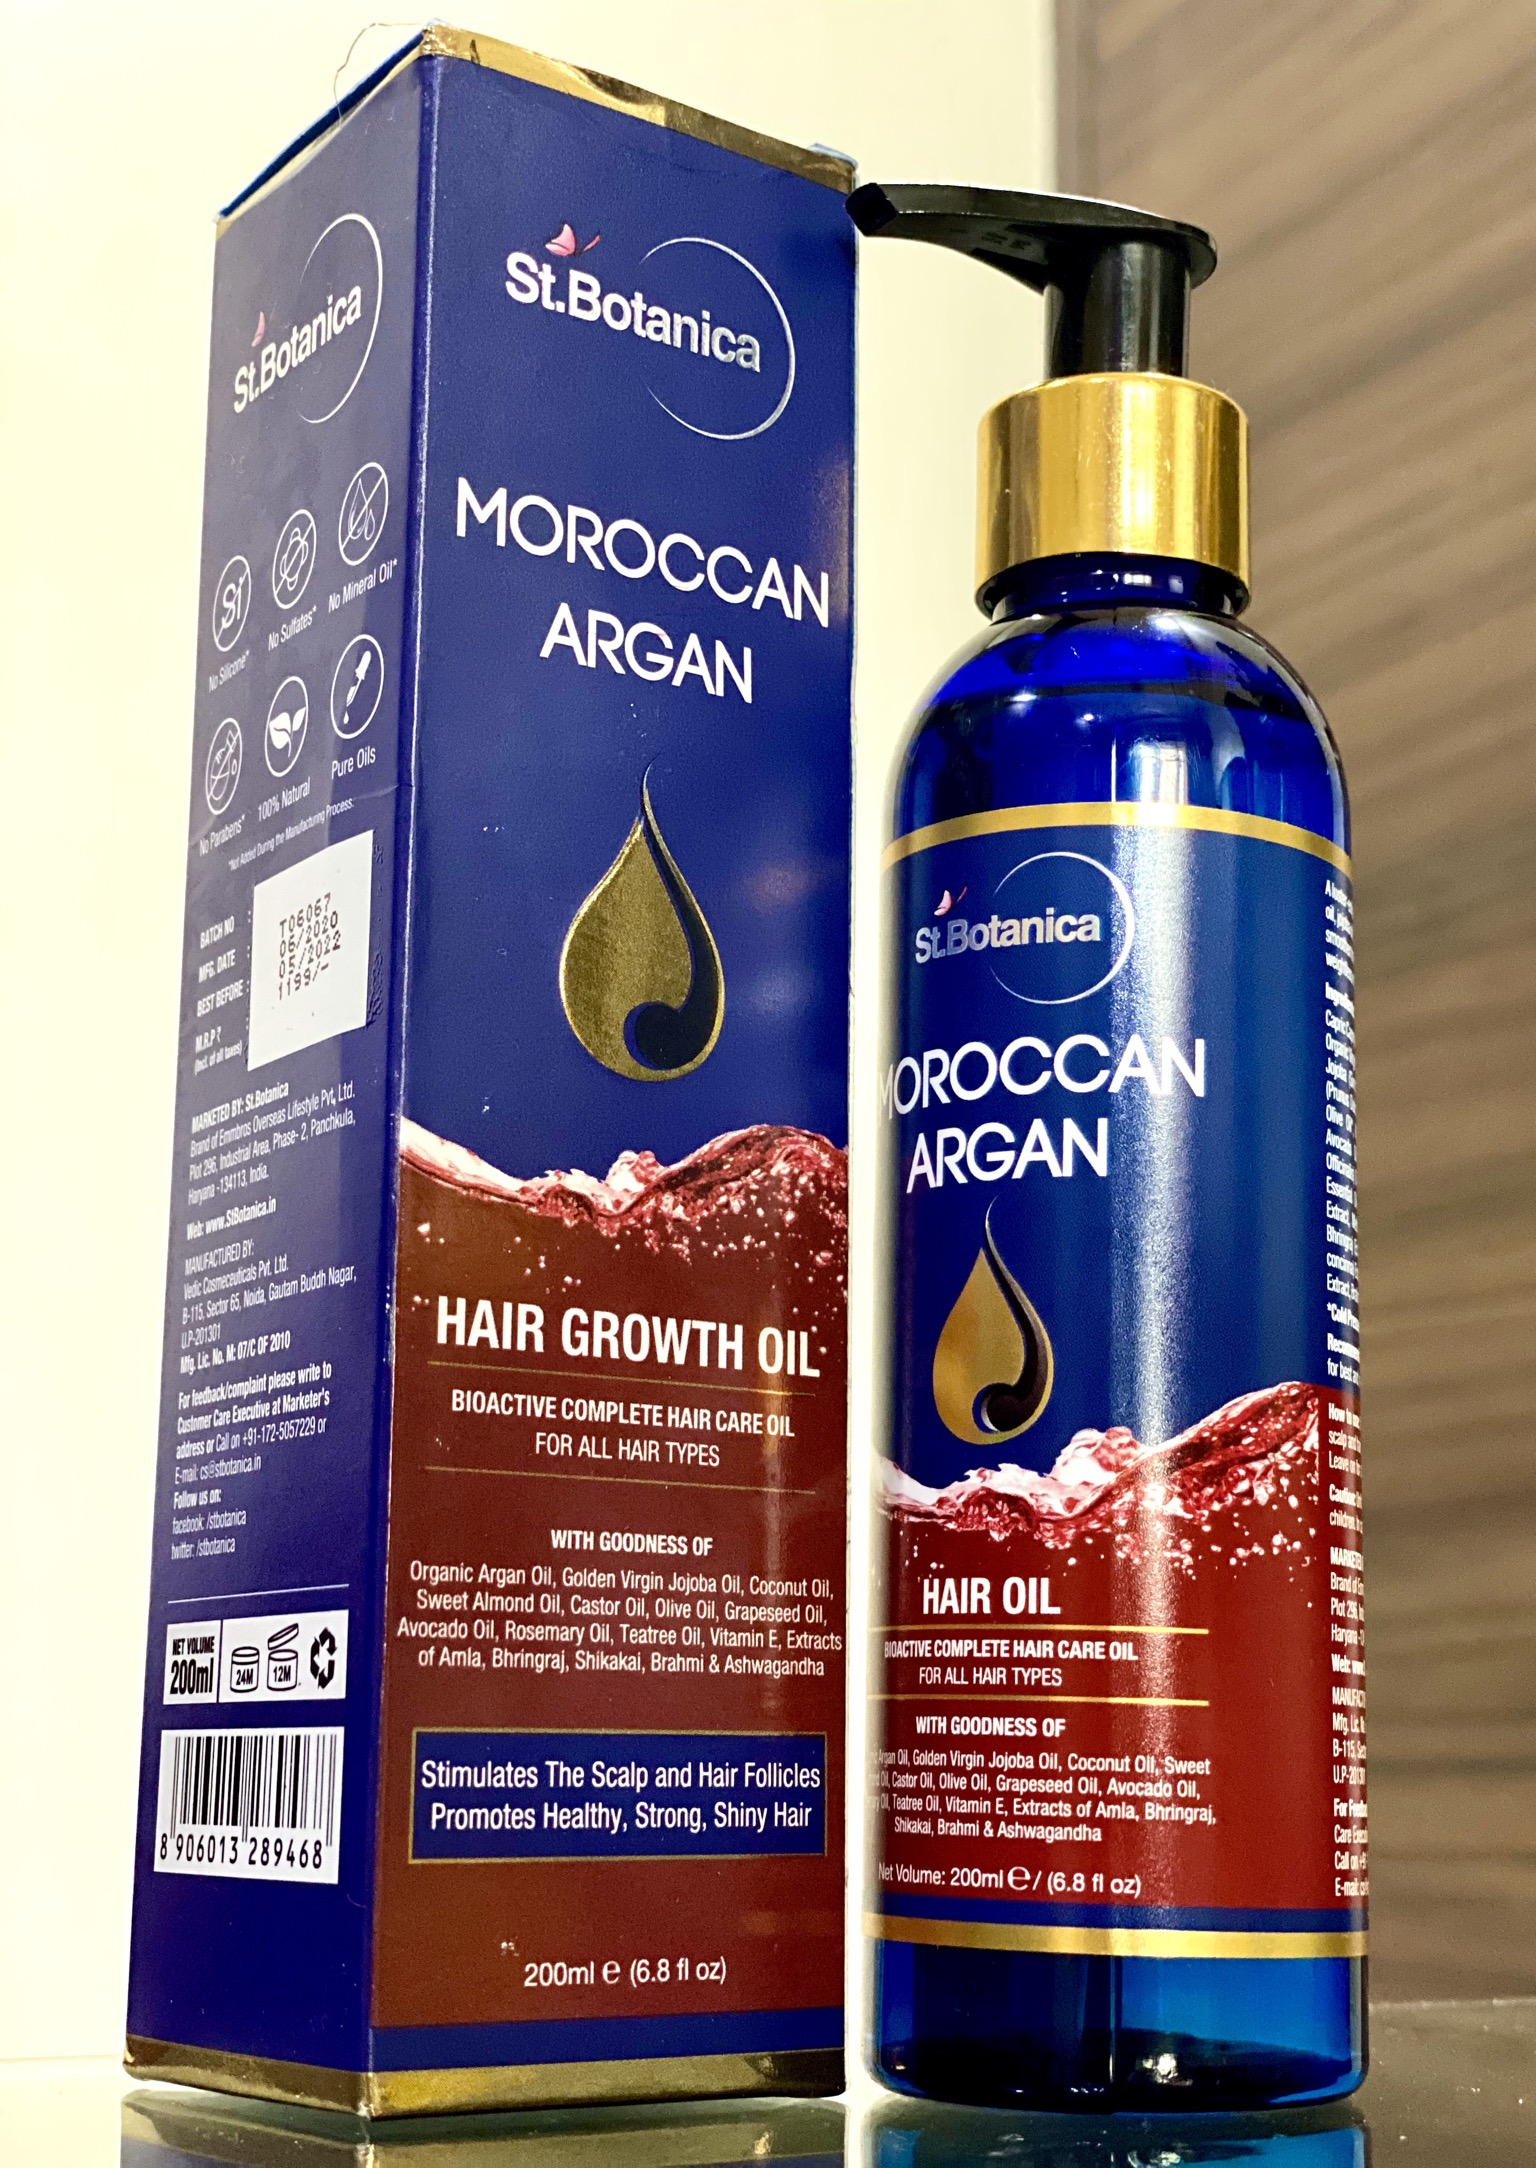 St.Botanica Moroccan Argan Hair Growth Oil-AMAZING HAIR OIL-By yogita_parmar